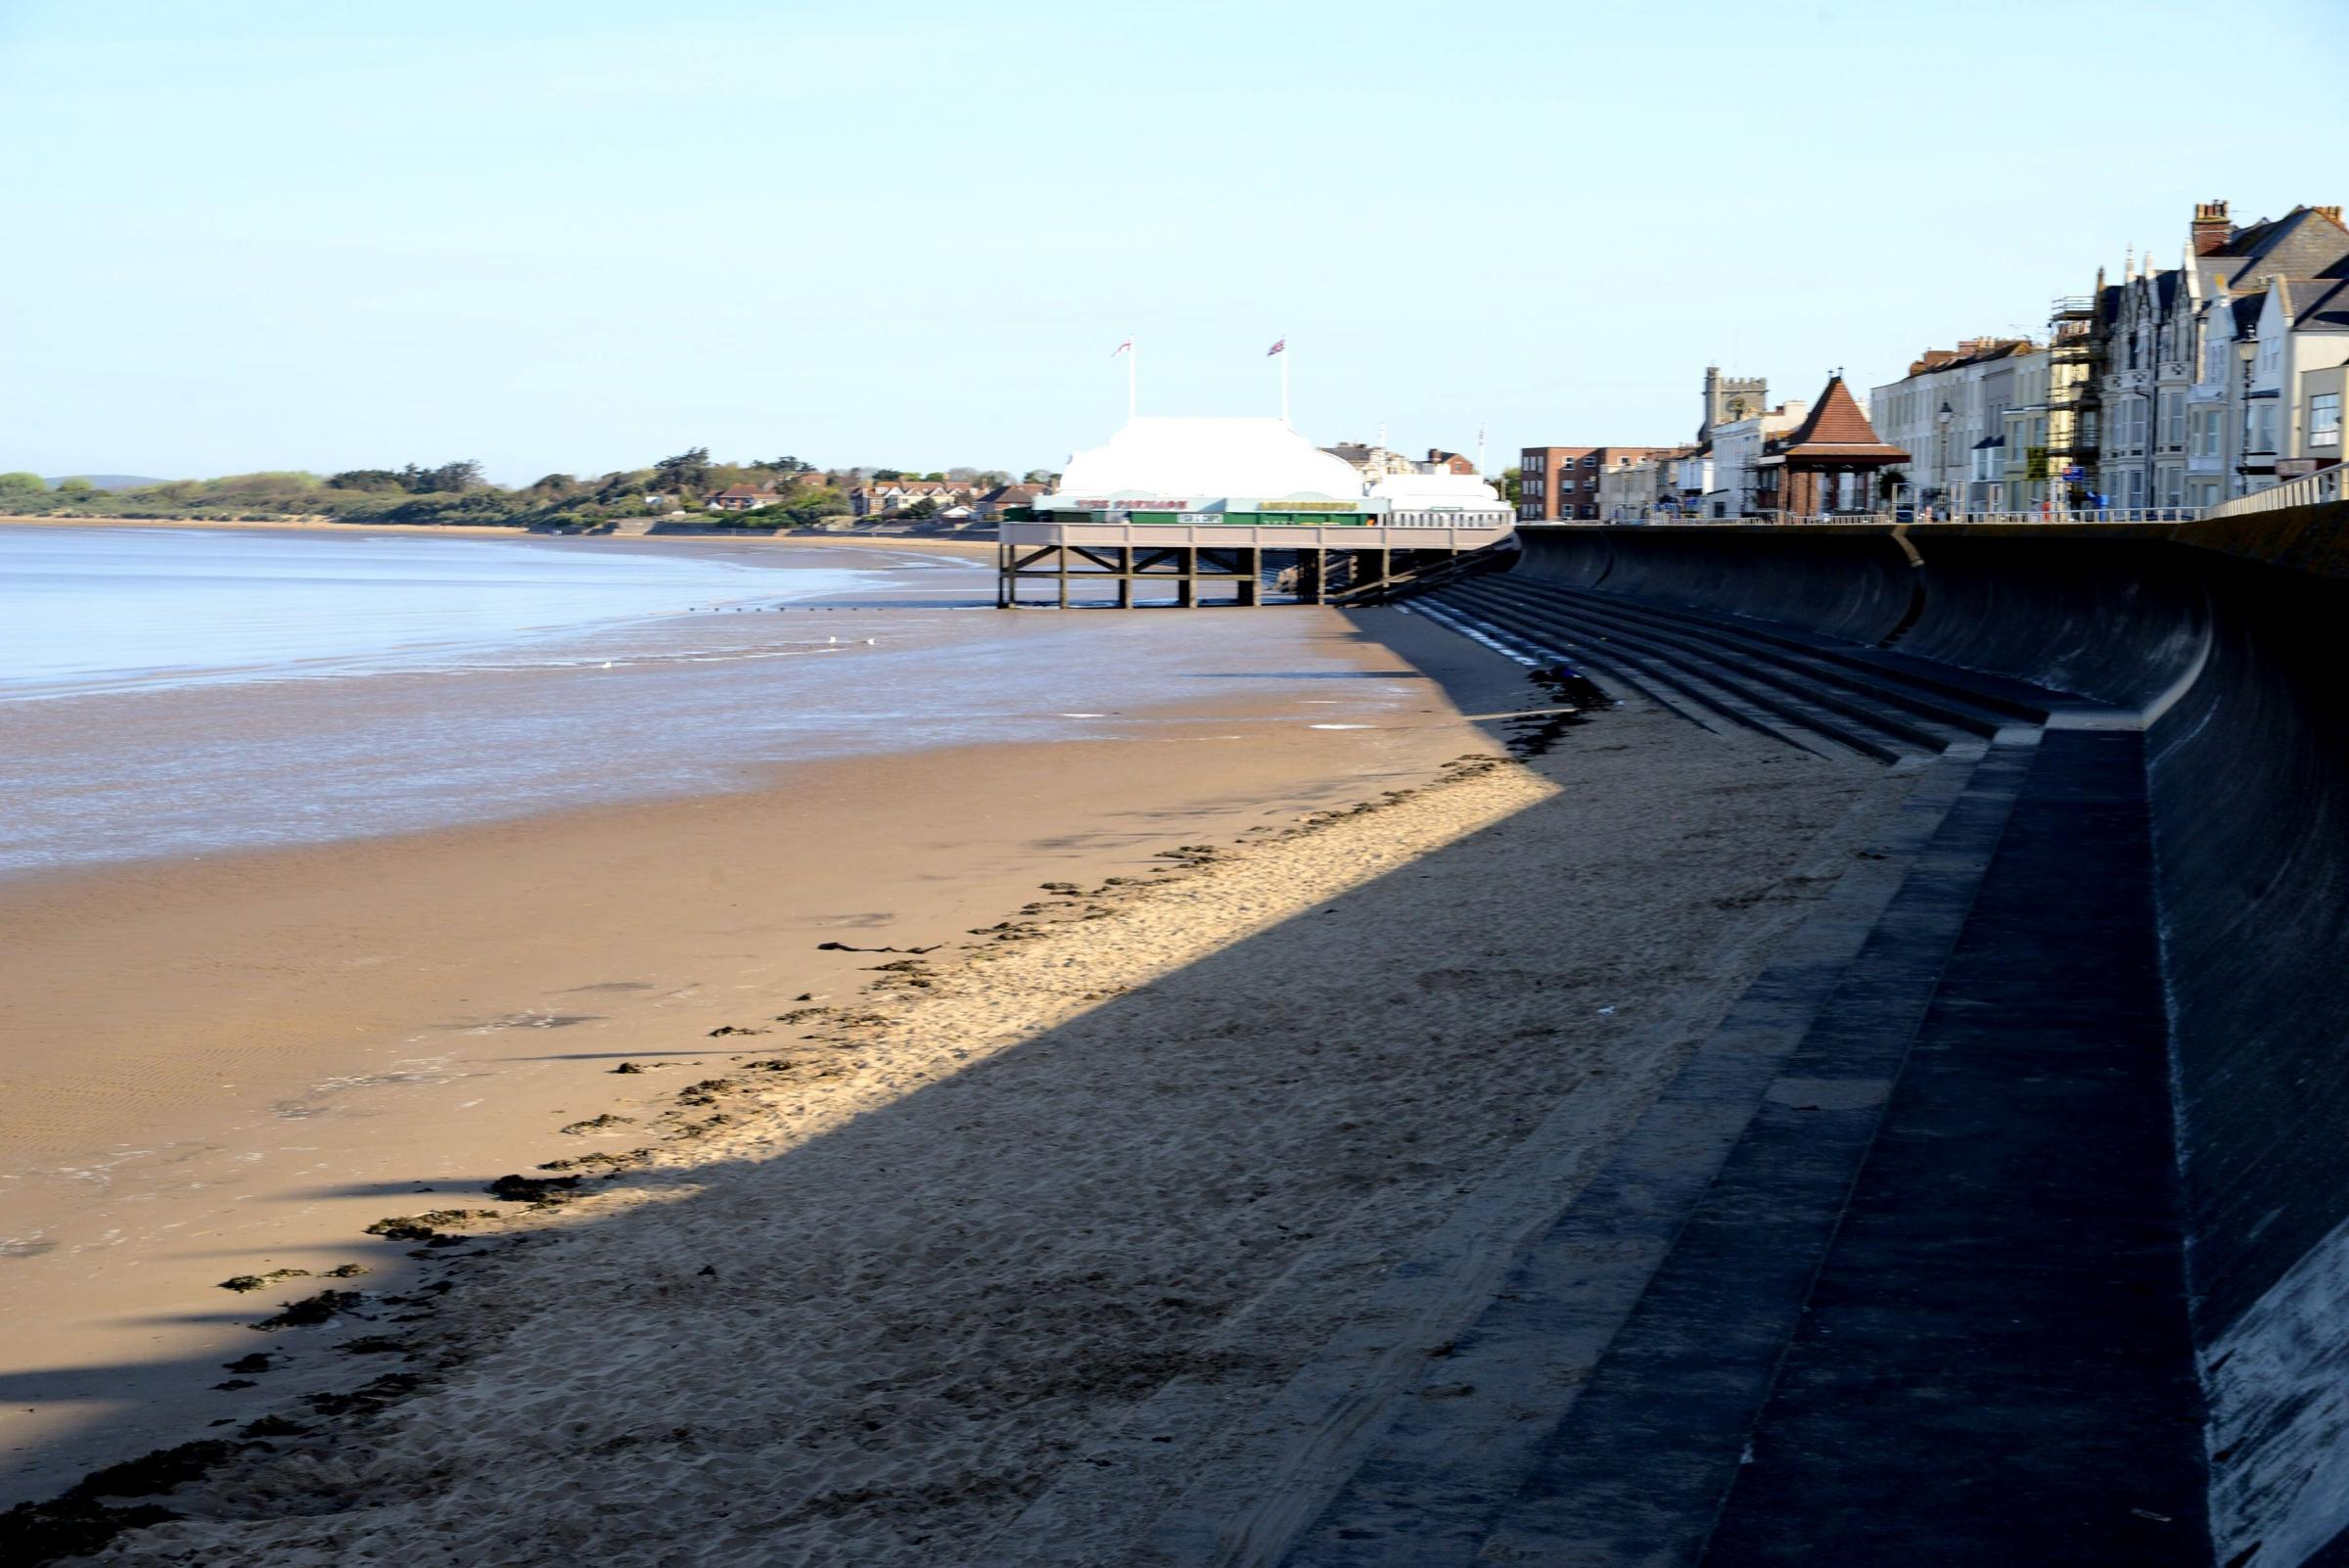 EA helps ensure Burnham beach passes tough EU regulations